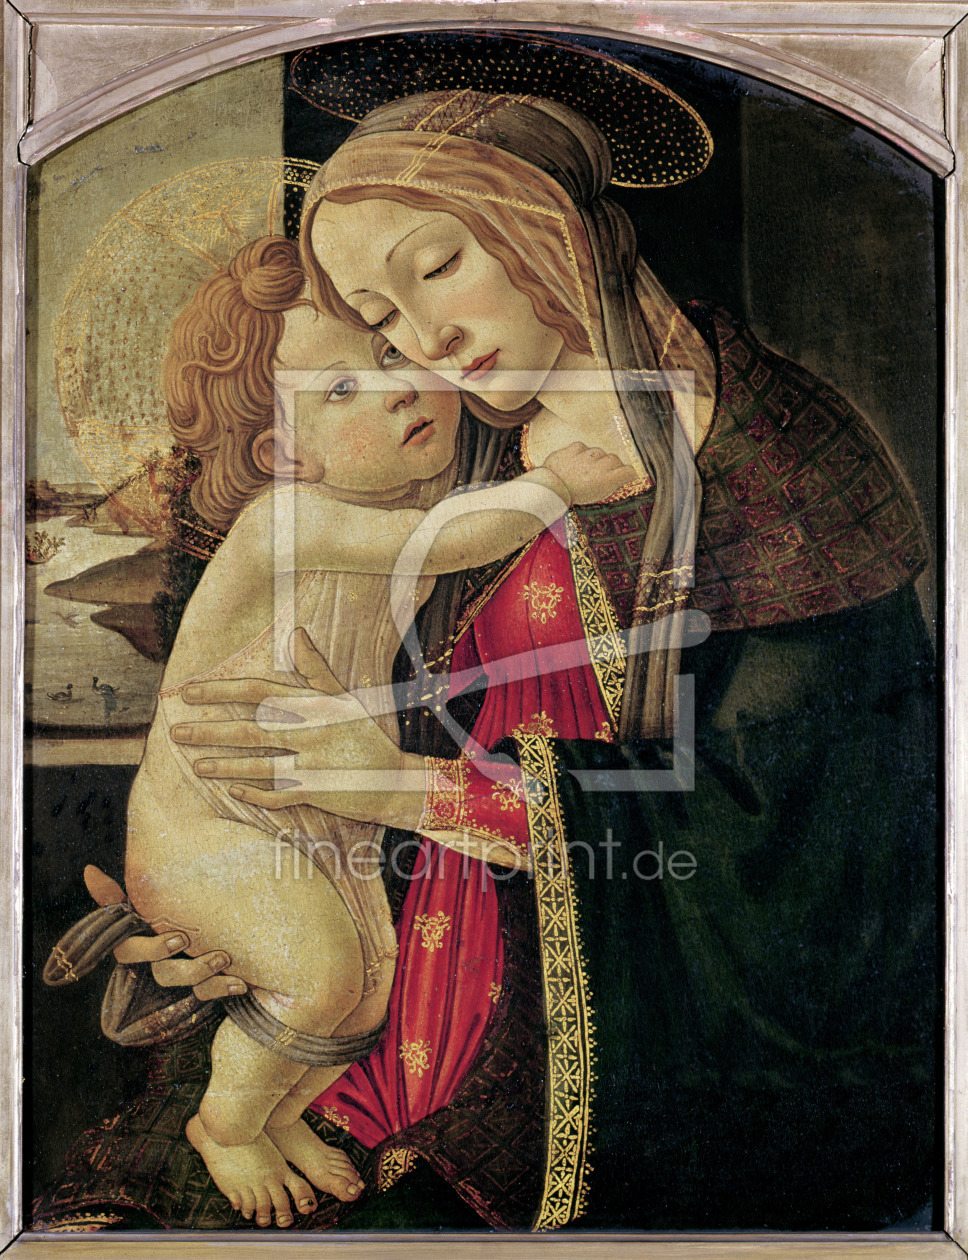 Bild-Nr.: 31000109 The Virgin and Child, c.1500 erstellt von Botticelli, Sandro